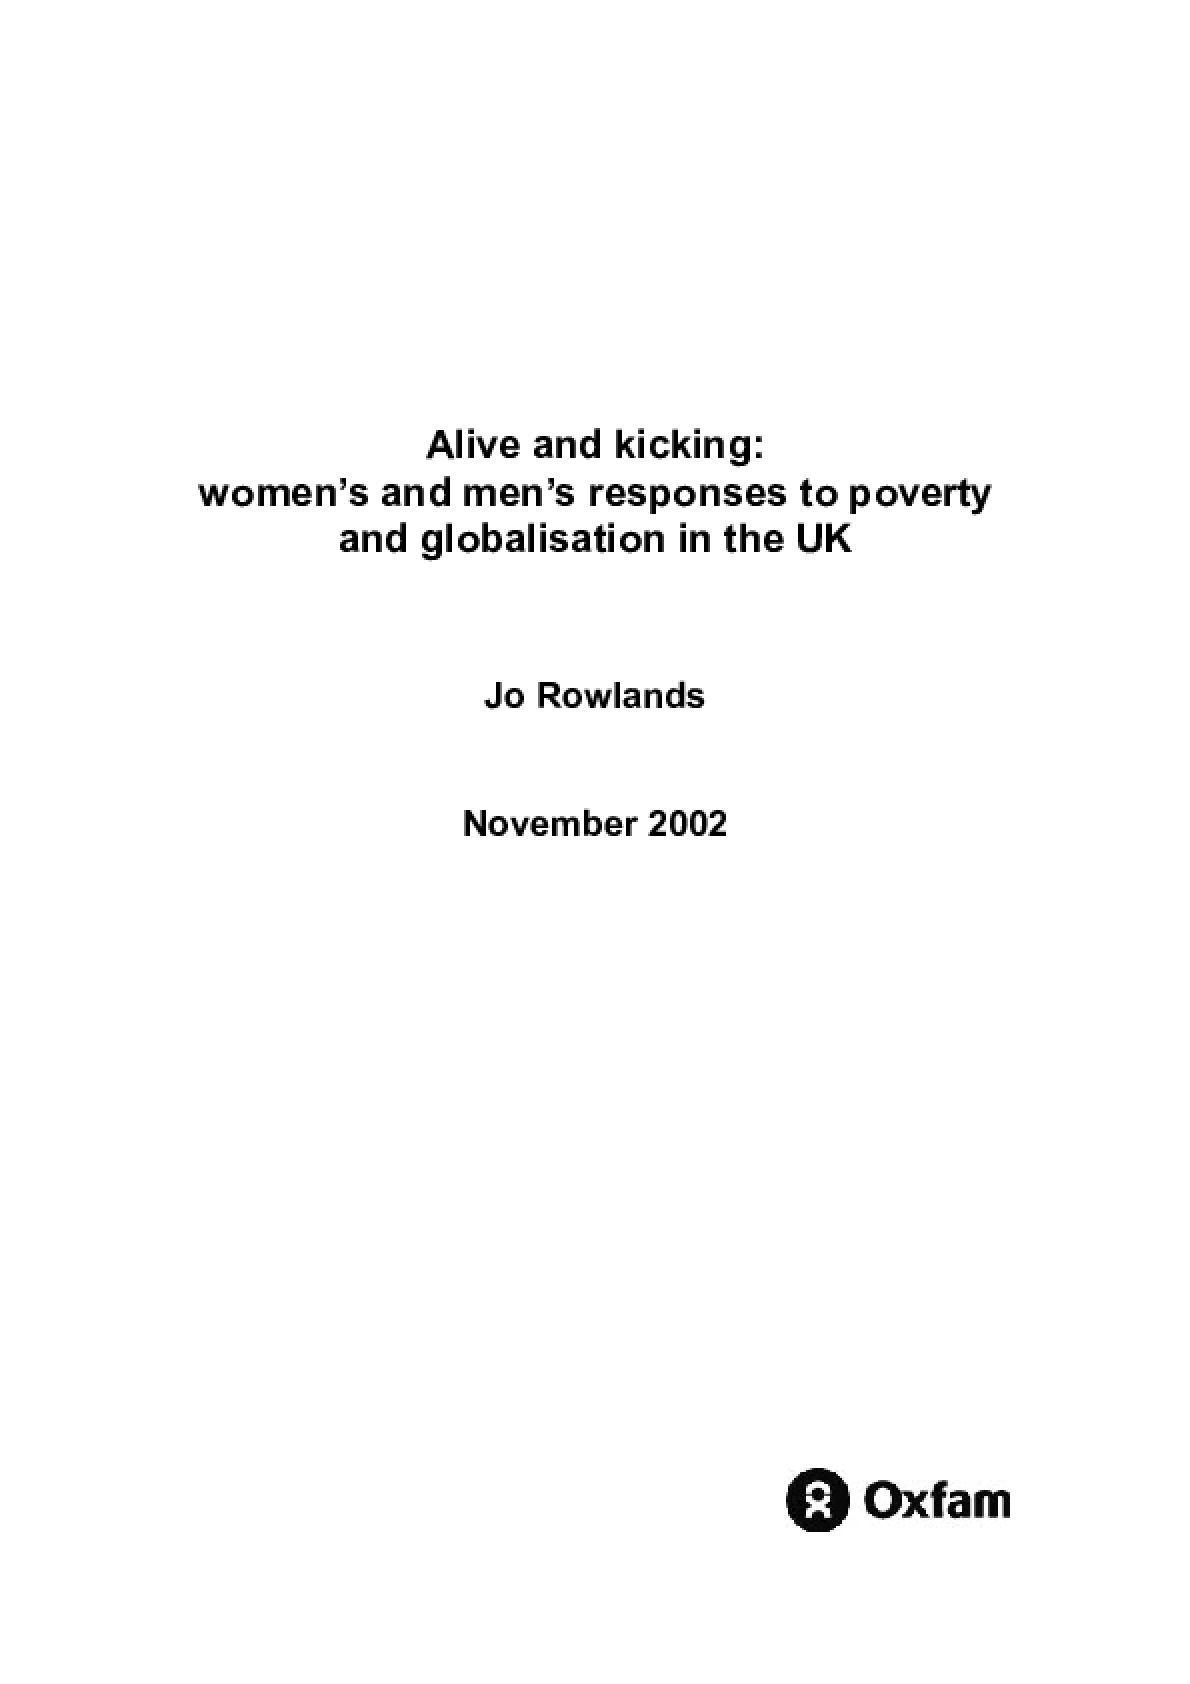 Alive and Kicking: Women's and men's respones to poverty and globalisation in the UK